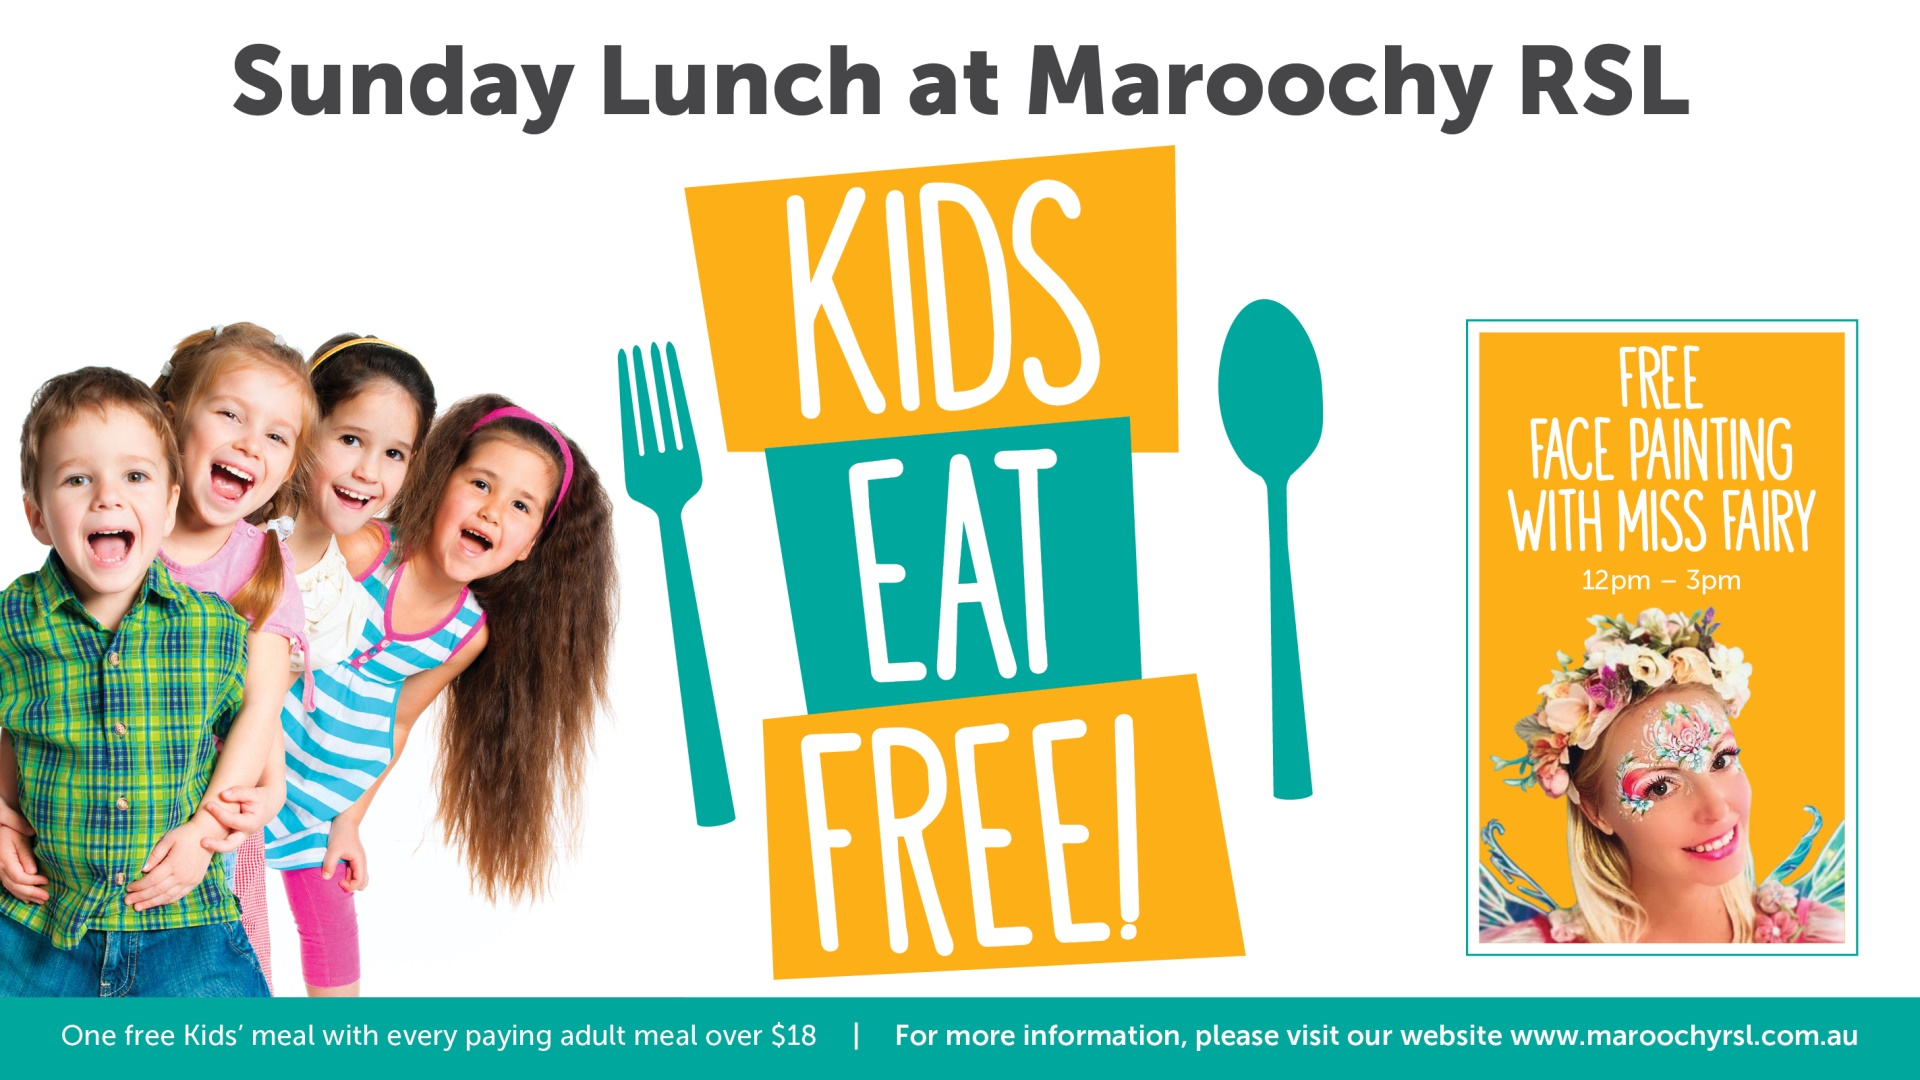 Kids Eat Free & Free Face Painting